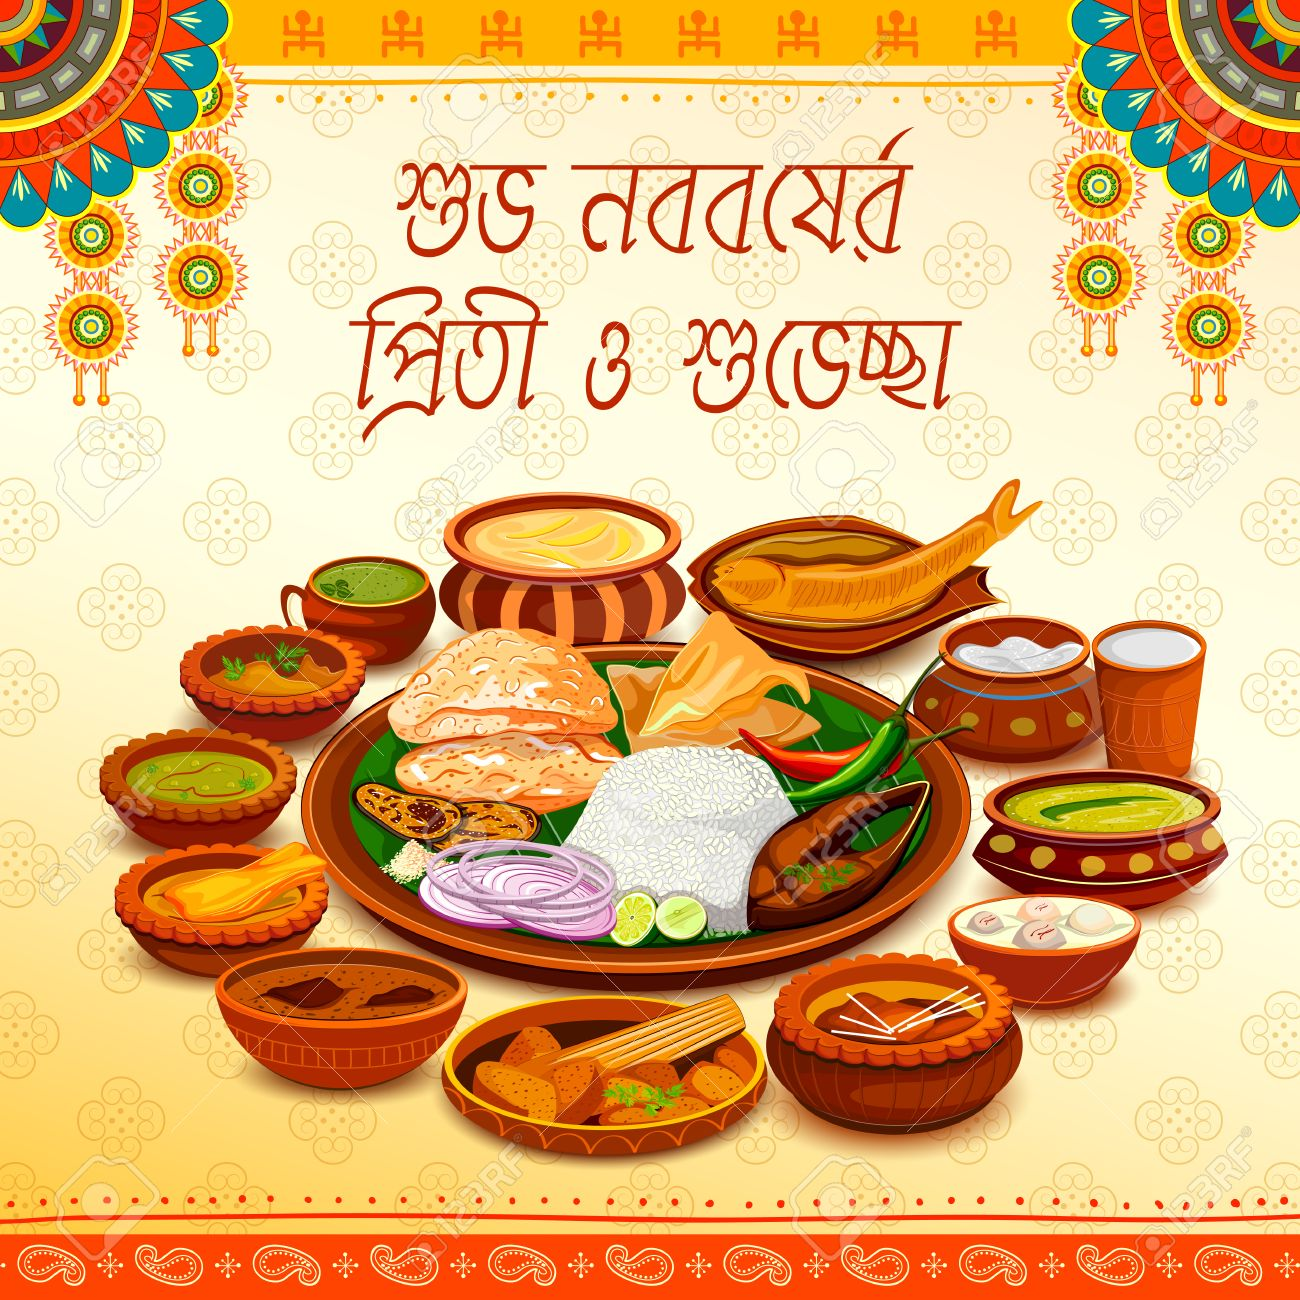 Illustration of greeting background with bengali text subho illustration of greeting background with bengali text subho nababarsha priti o subhecha meaning love and wishes m4hsunfo